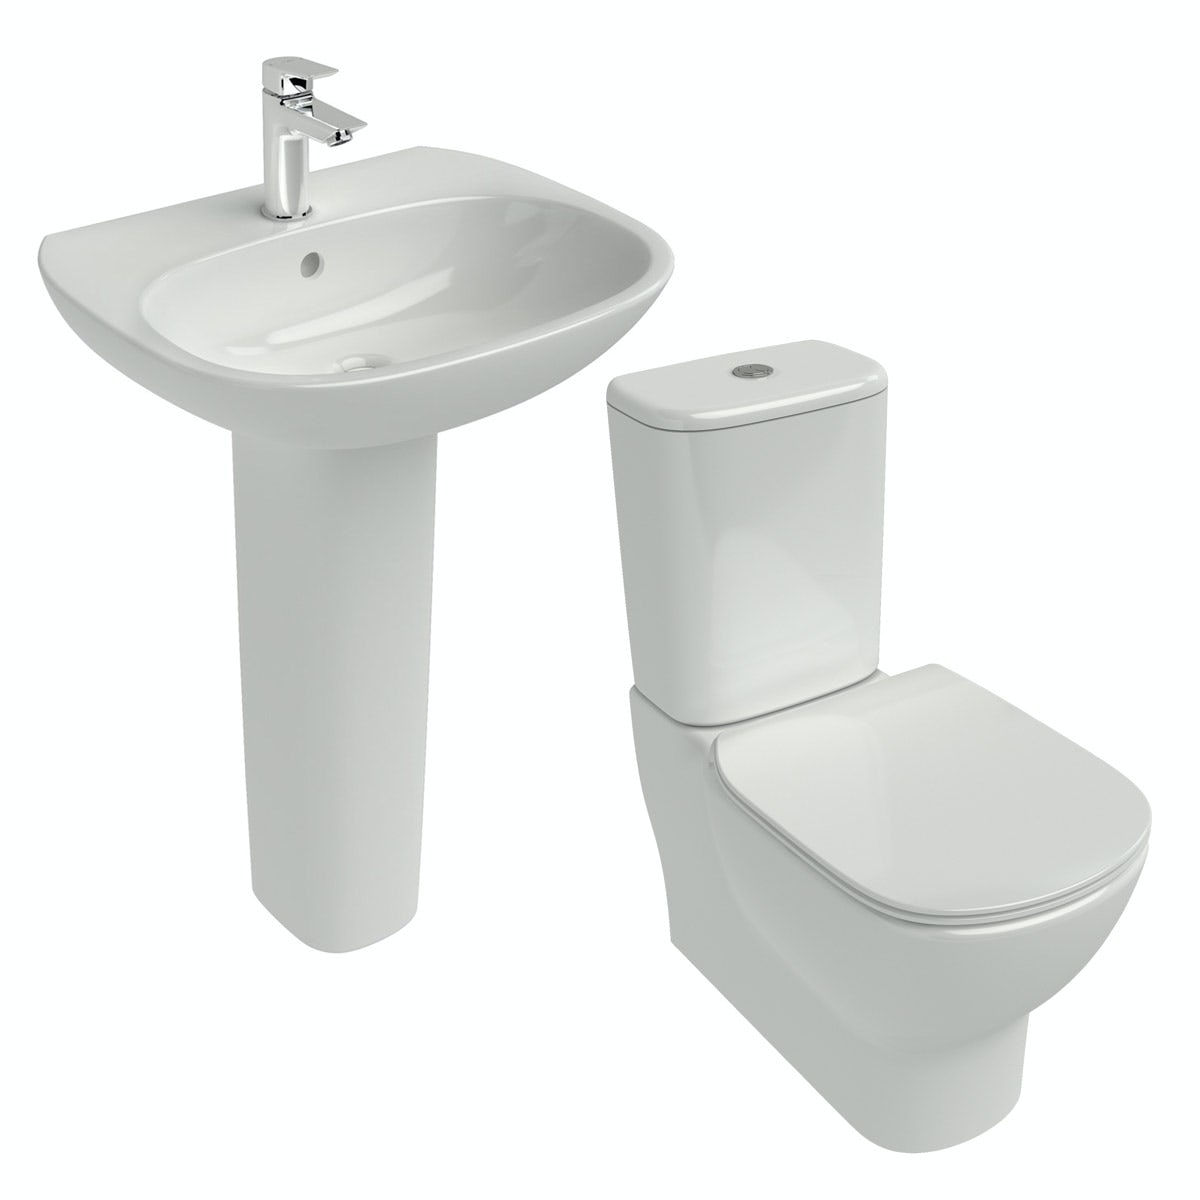 Ideal standard tesi cloakroom suite with full pedestal for Diagonal ideal standard